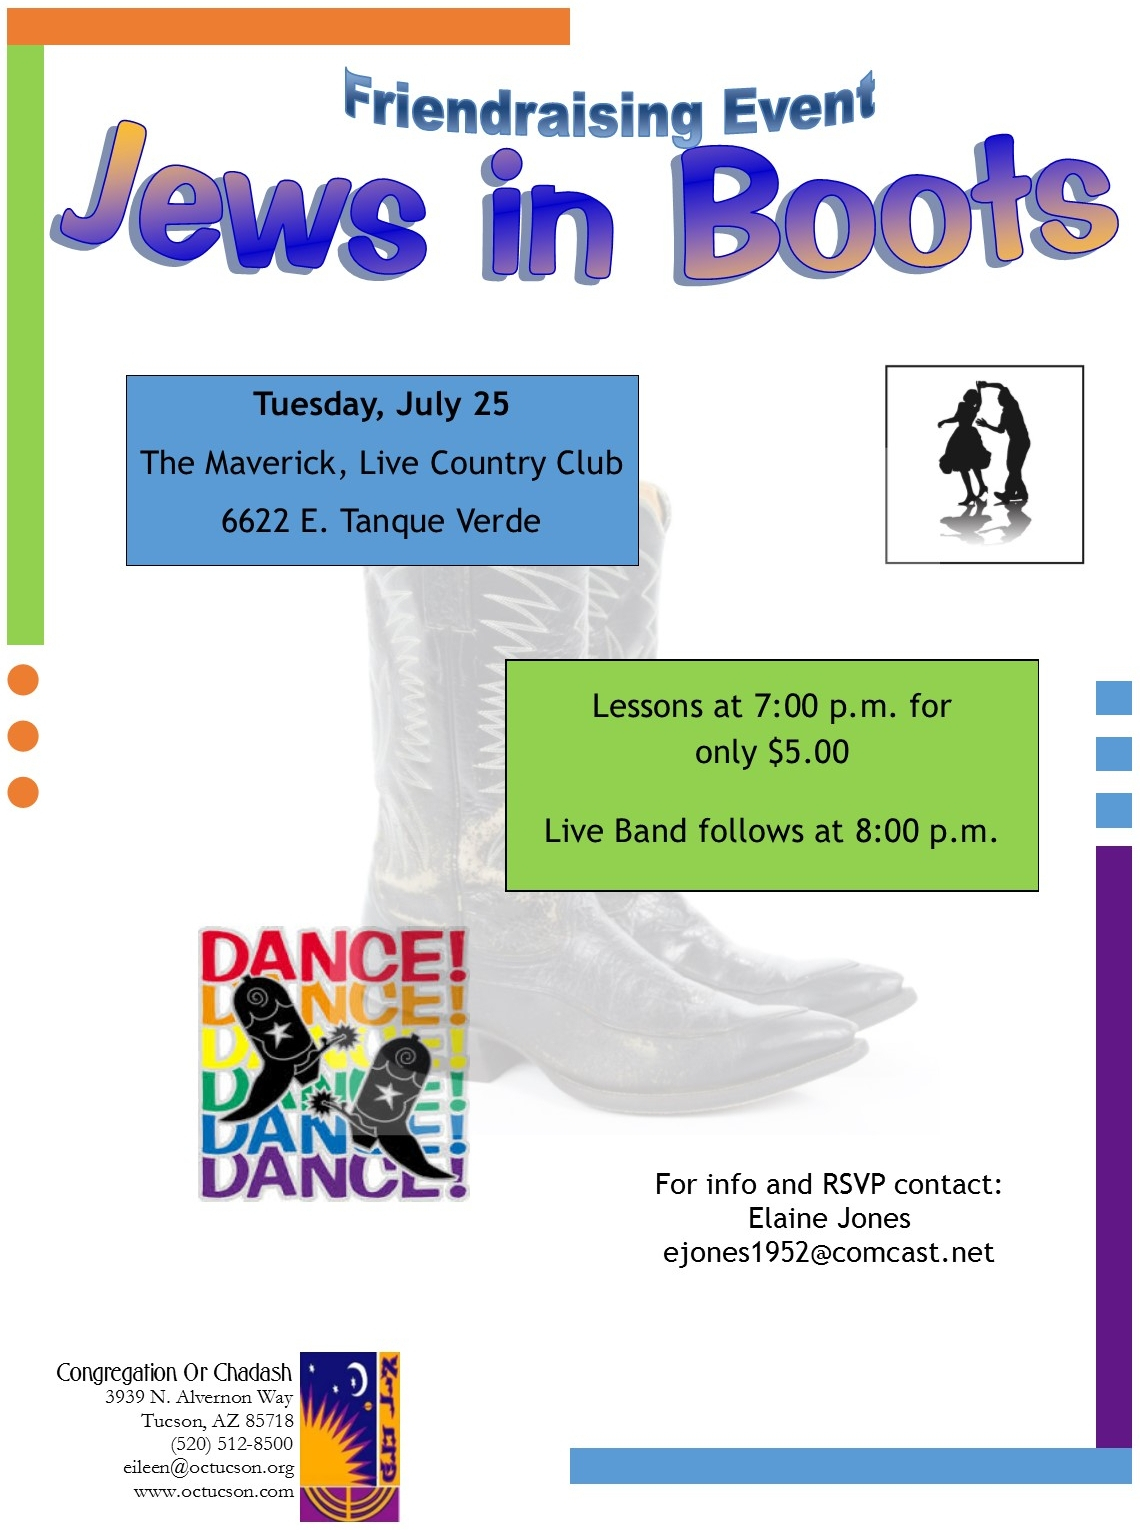 Jews in Boots